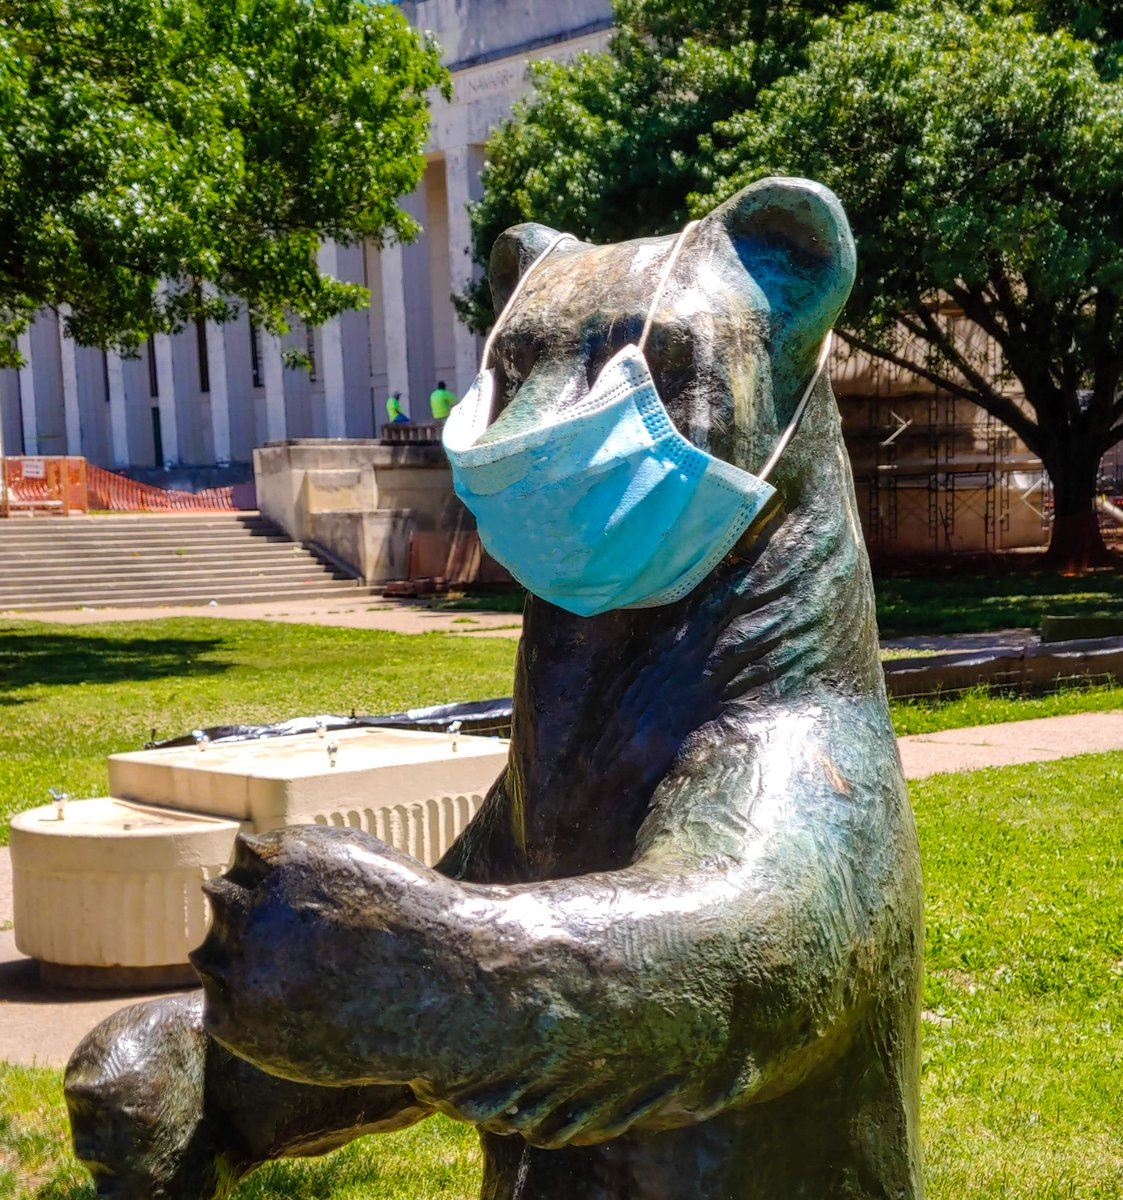 It's Monday. 😬 Grin and bear through it! 🐻 😷 #myFairPark